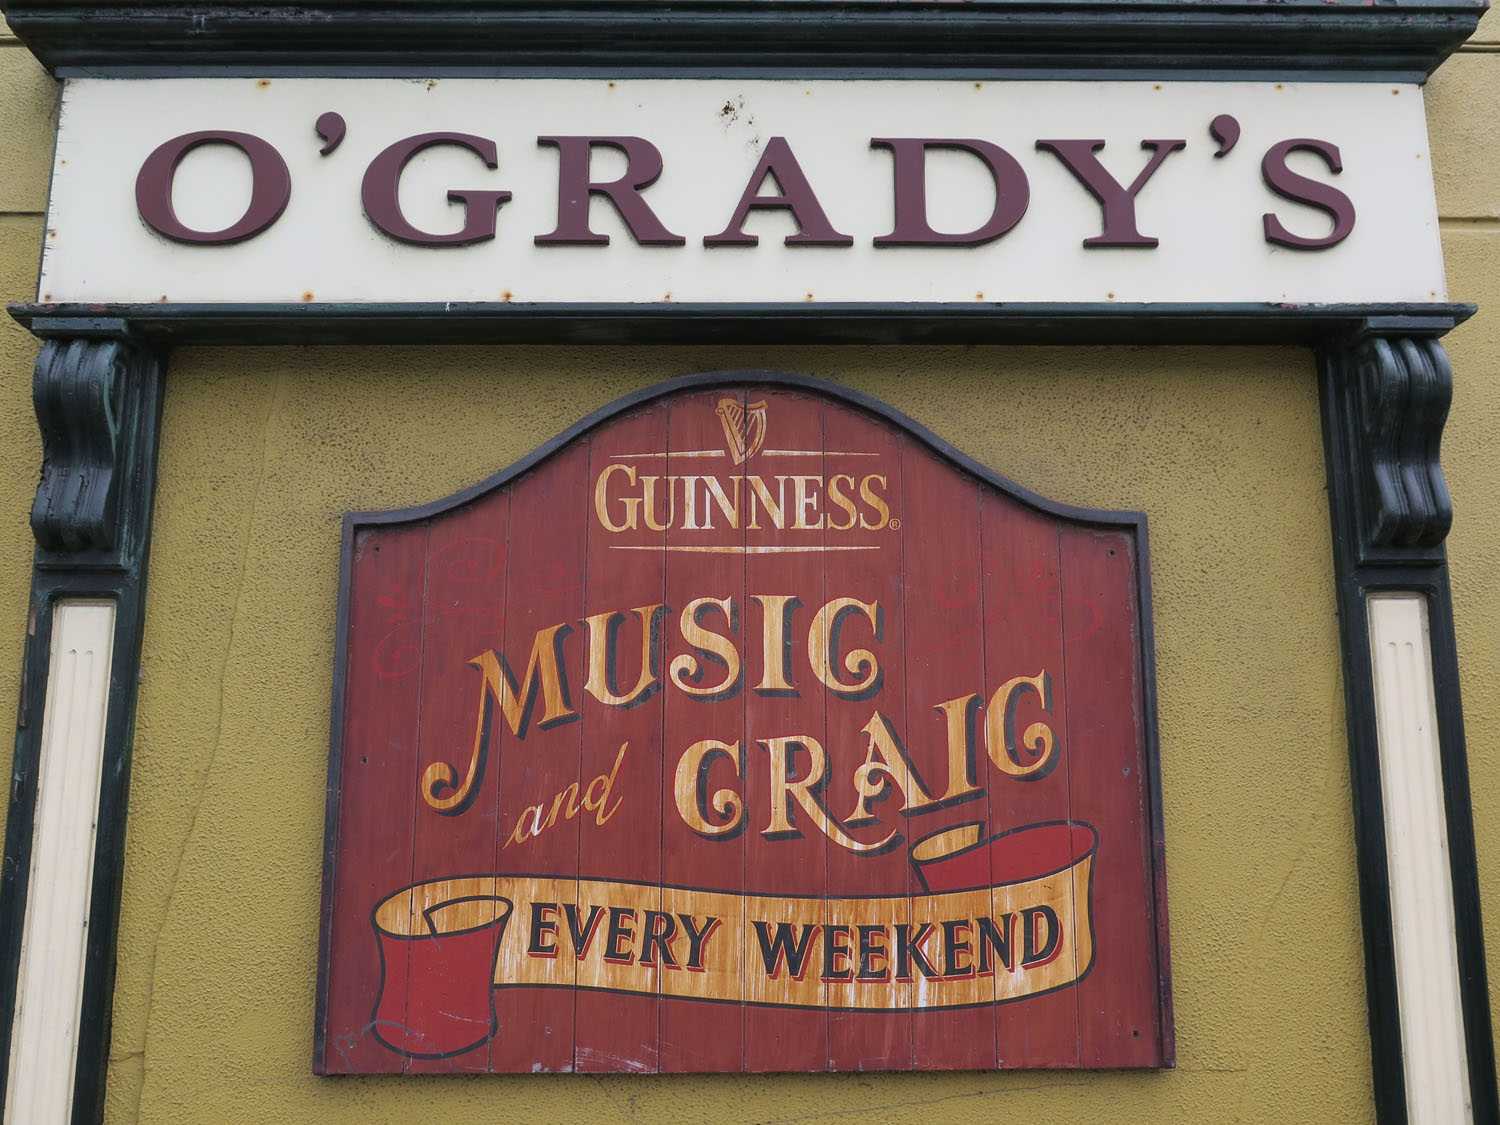 Ireland-Sights-And-Scenery-Music-Westport-Ogradys